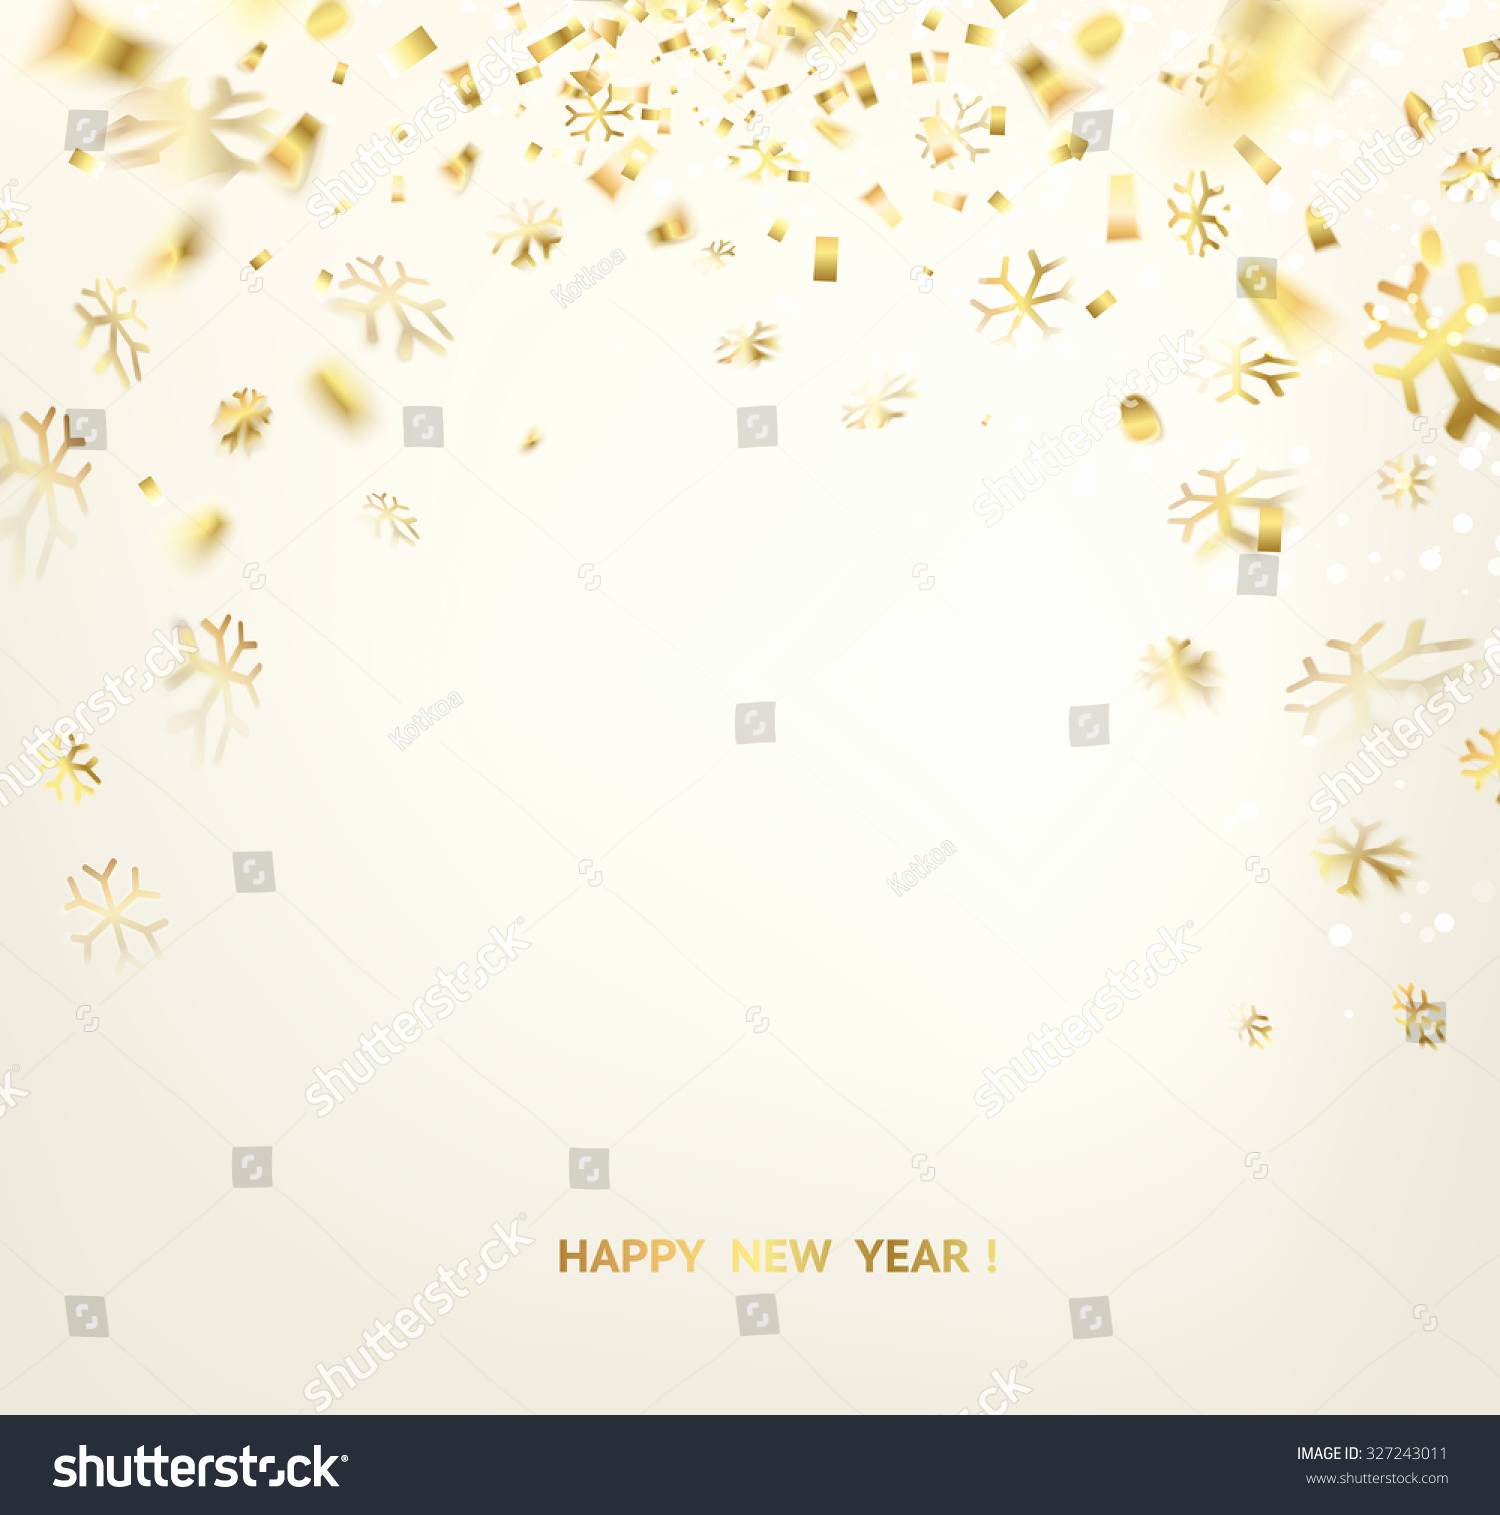 New Year Card Template Unique Happy New Year Card Template Over Stock Vector